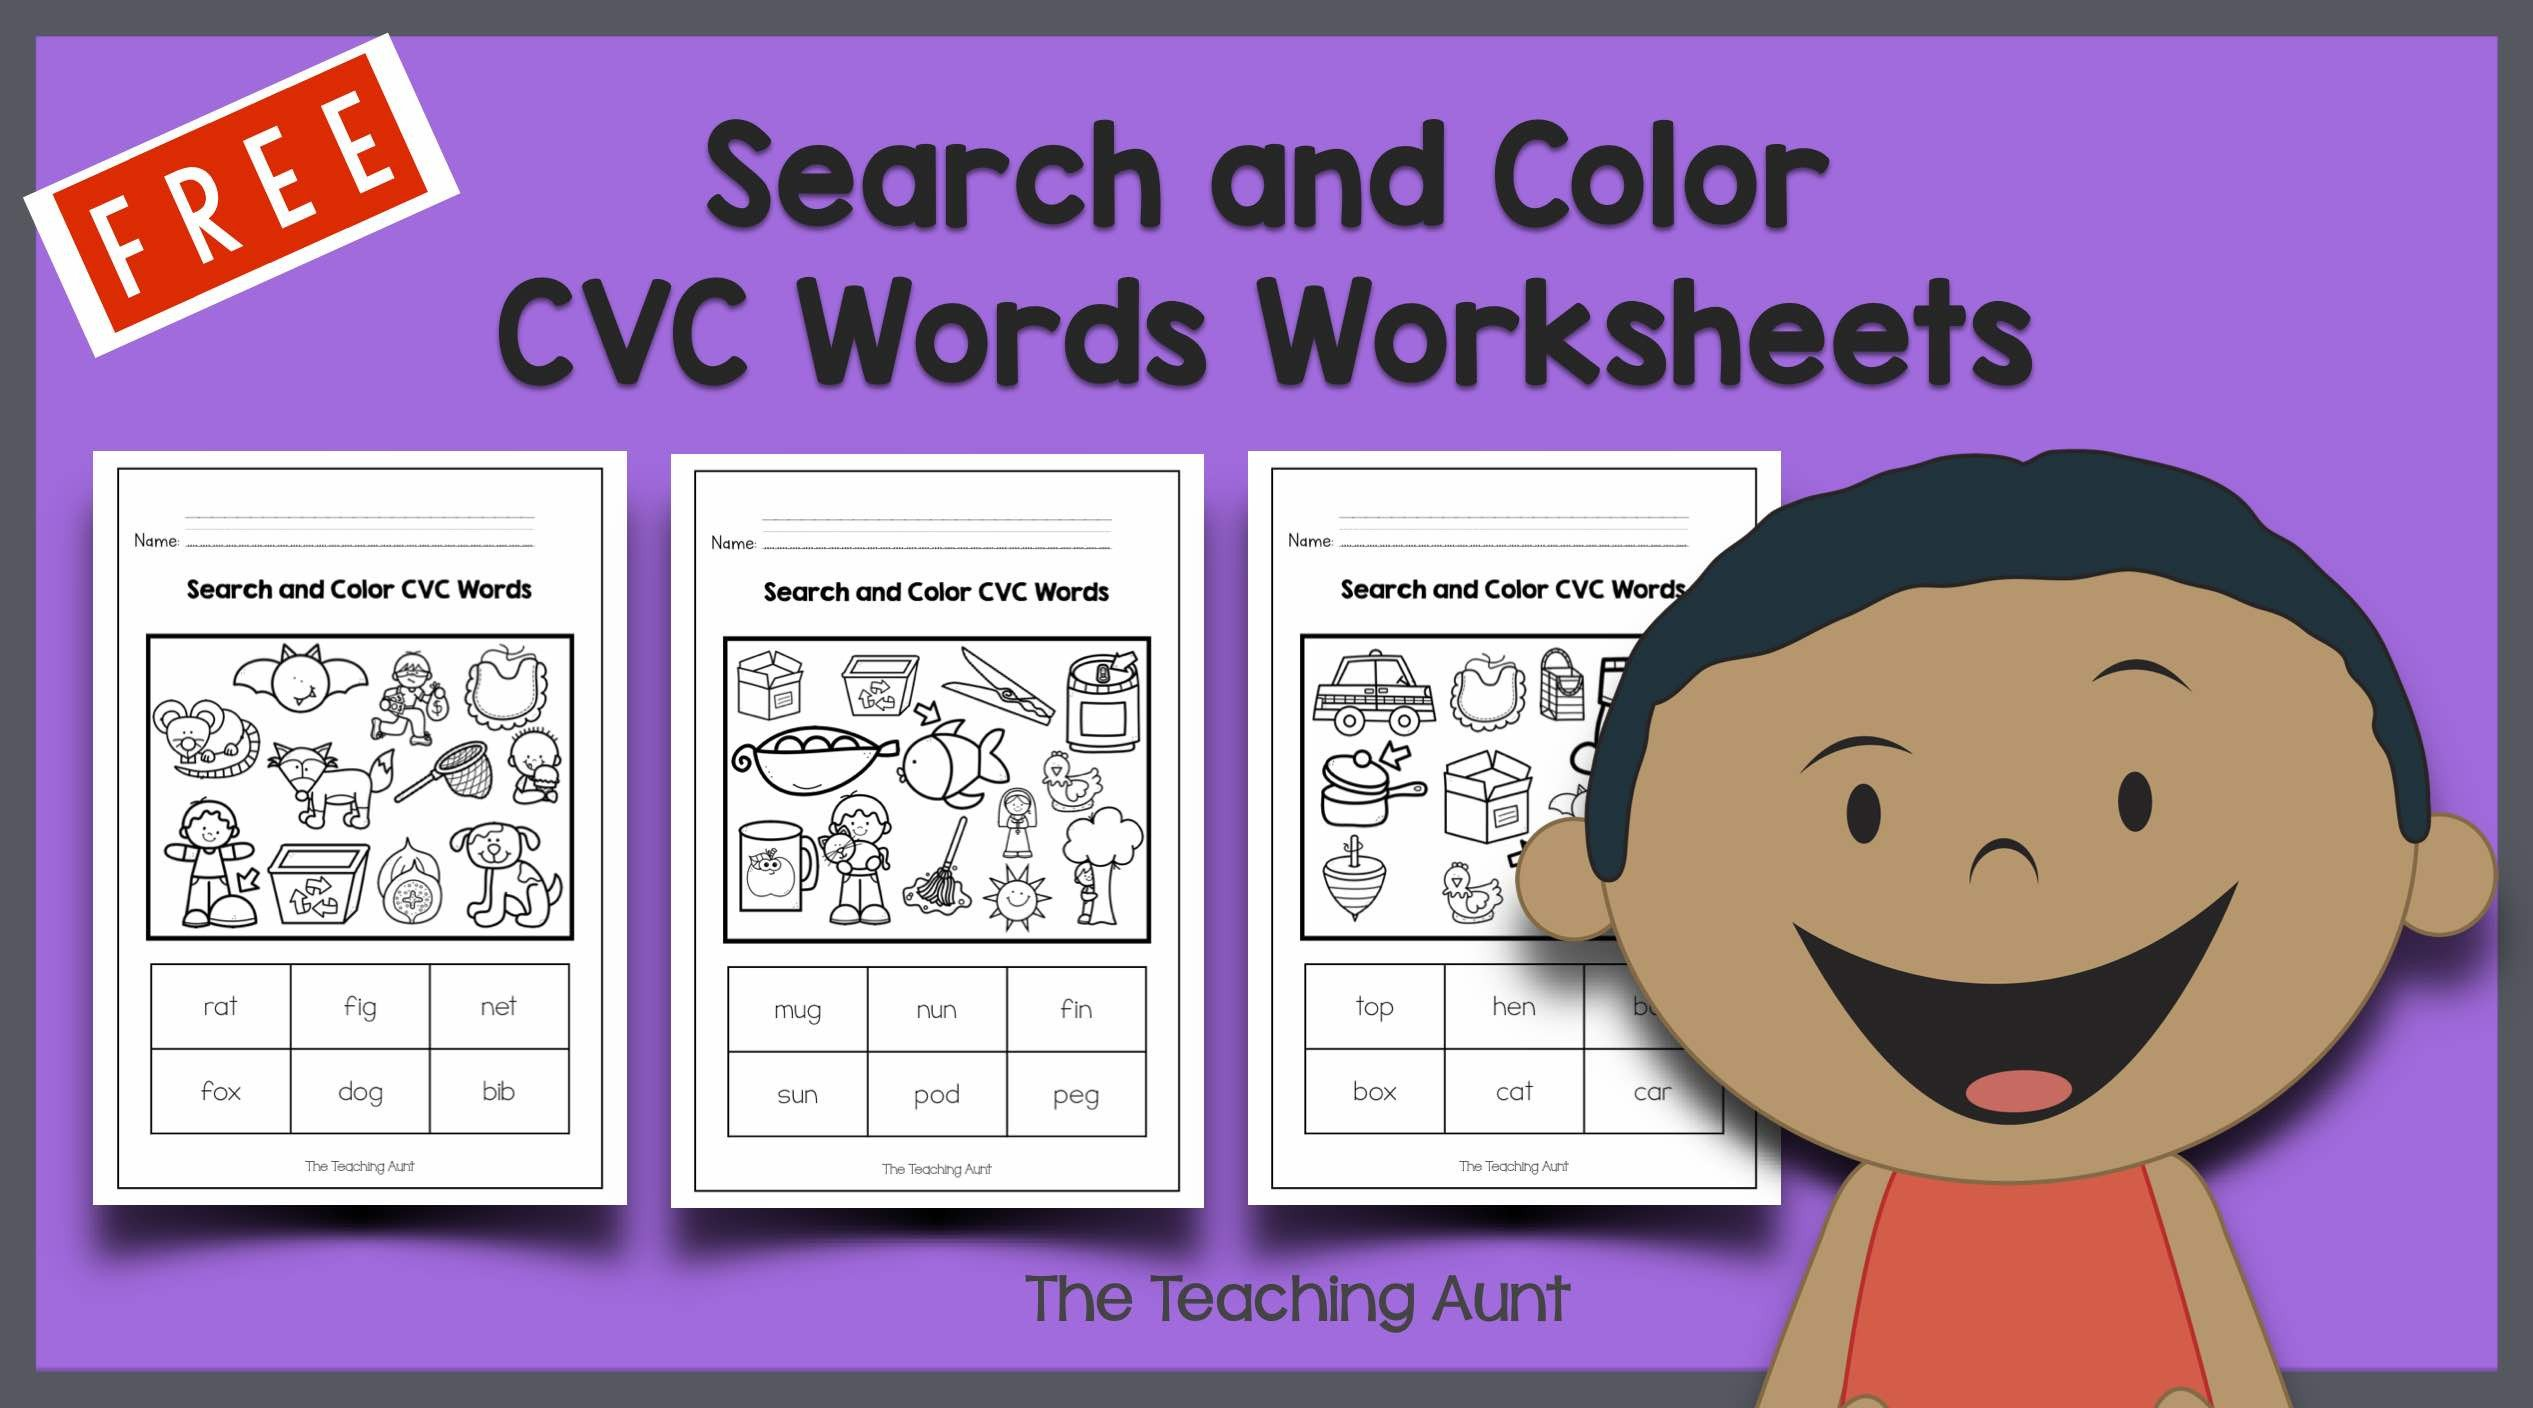 Cvc Worksheets Pdf Search and Color Cvc Words Worksheets the Teaching Aunt